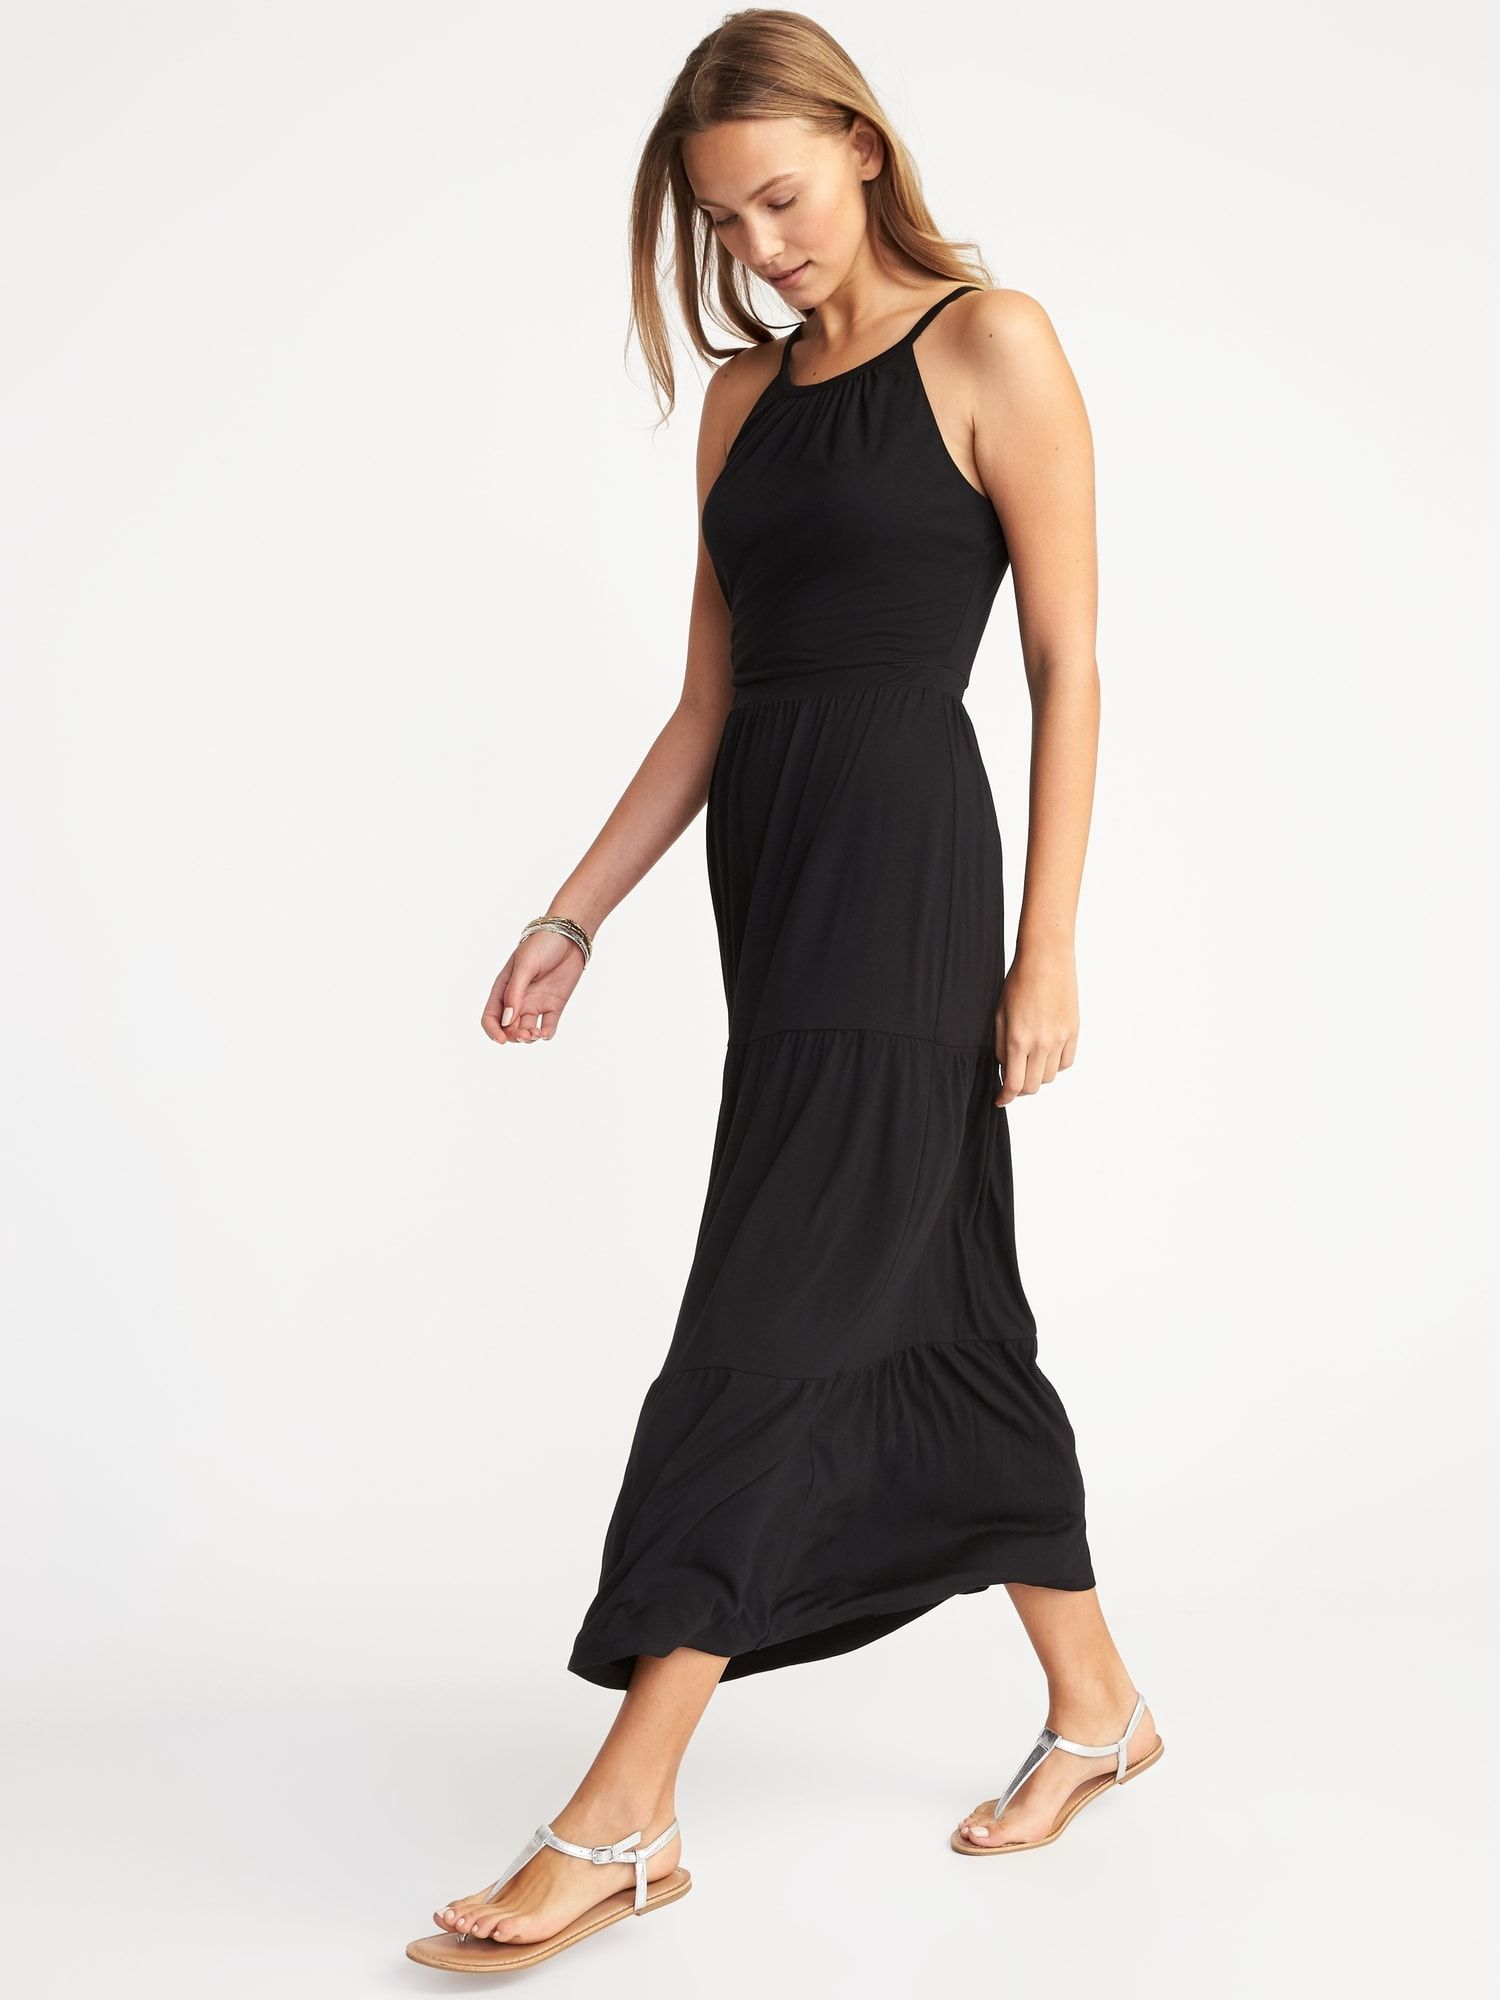 31e9b00ee76c5 product photo Old Navy Outfits, Old Navy Dresses, Beach Dresses, Summer  Dresses,